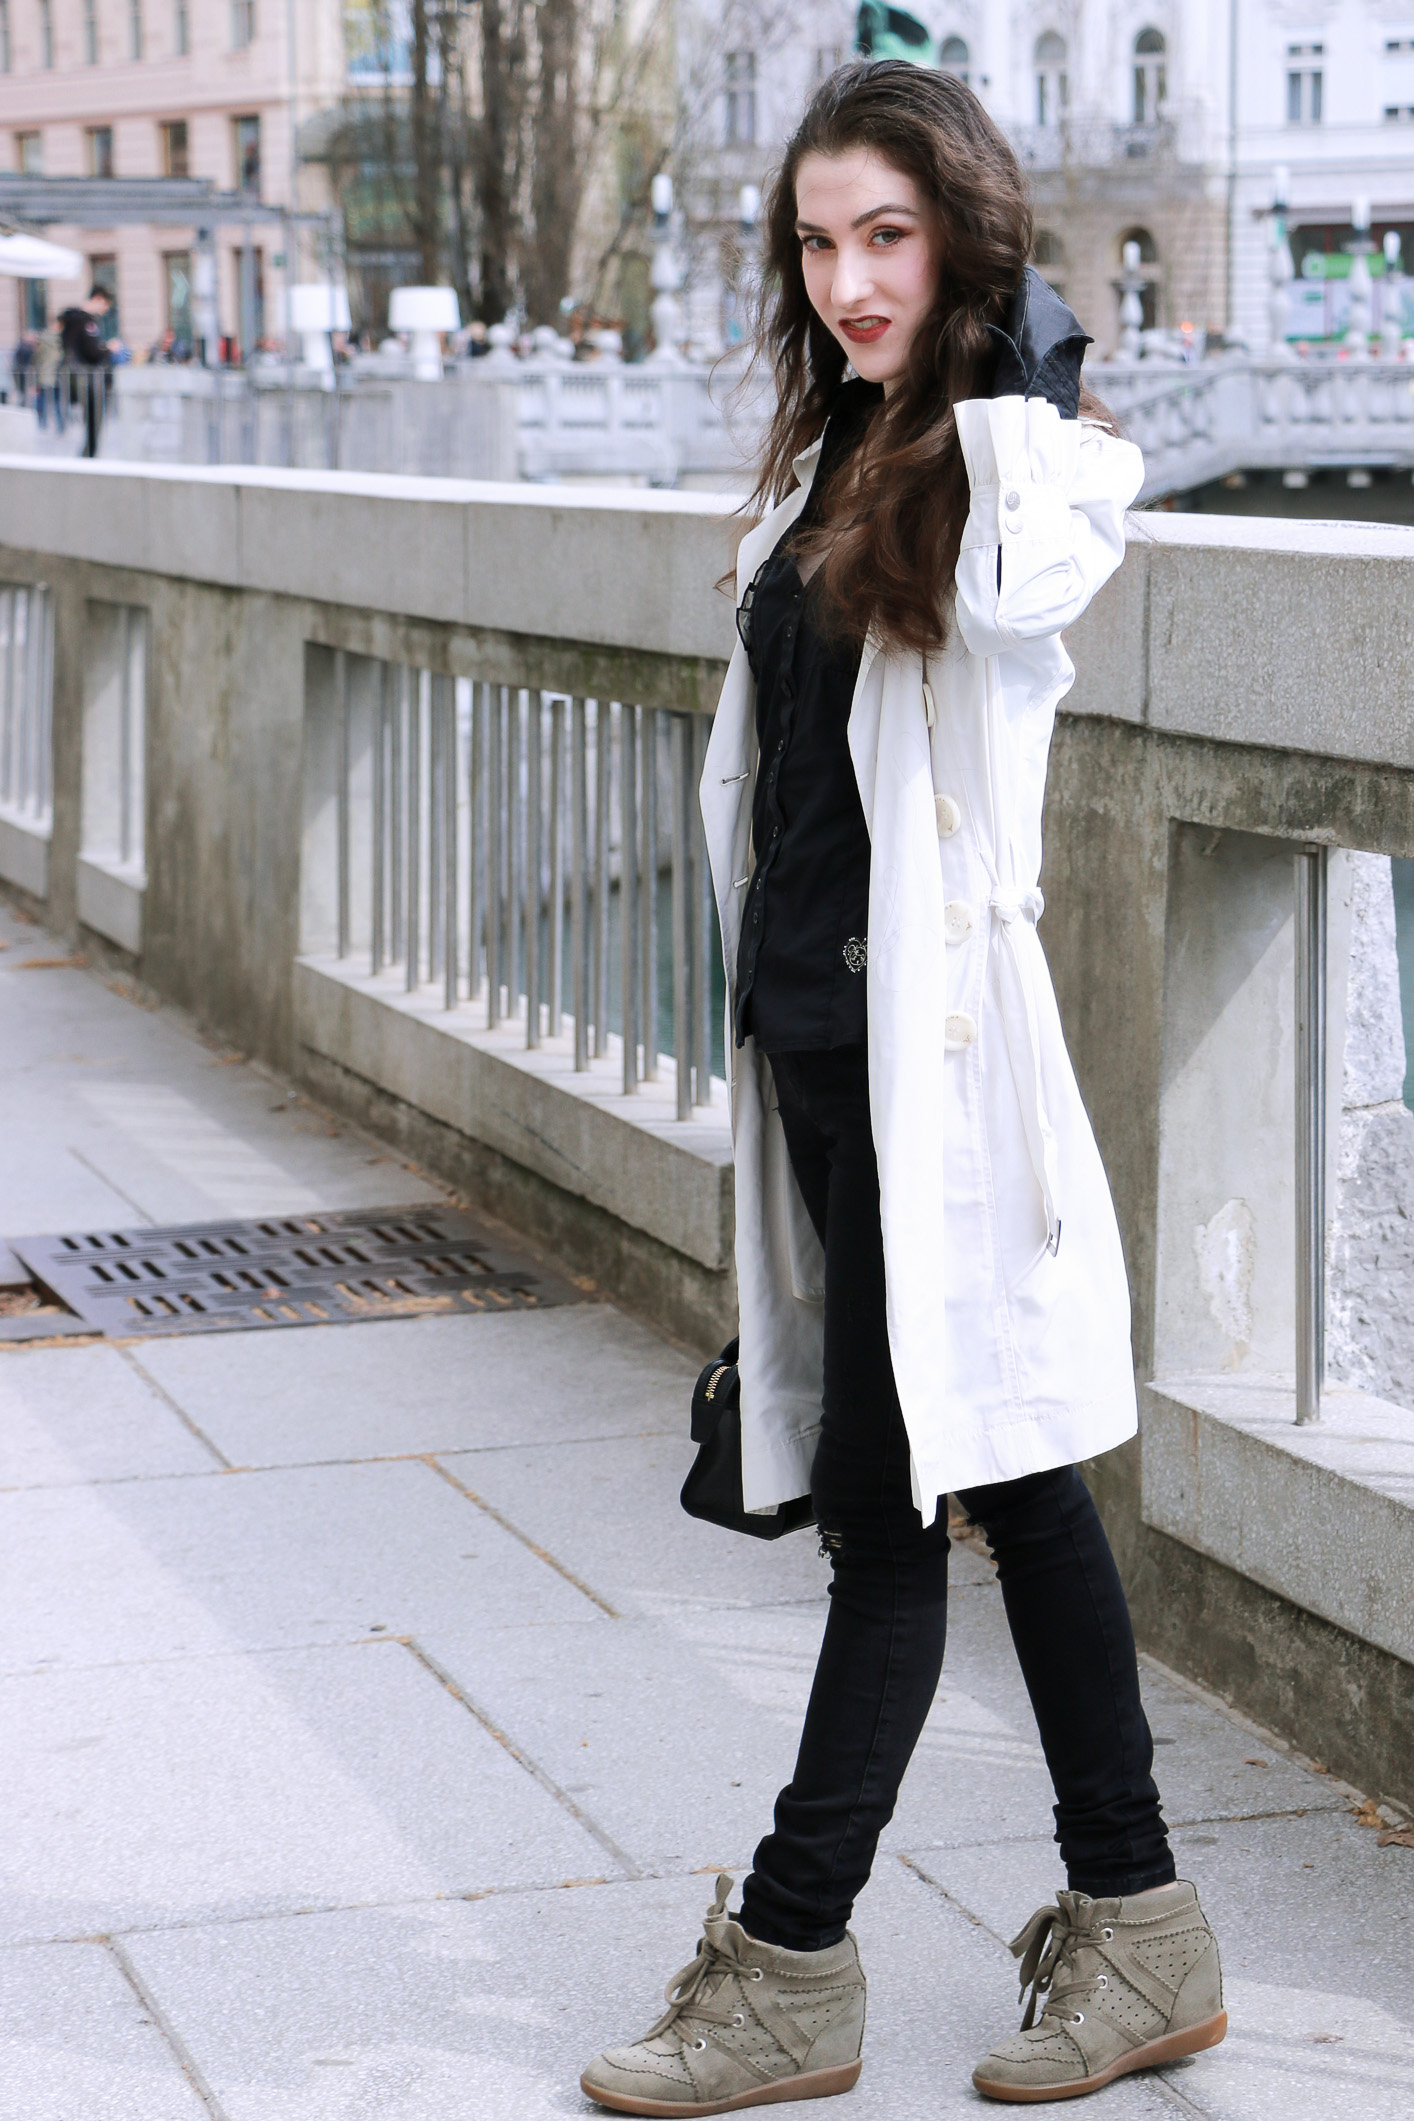 Fashion blogger Veronika Lipar of Brunette From Wall Street on how to look chic wearing ruffled clothes